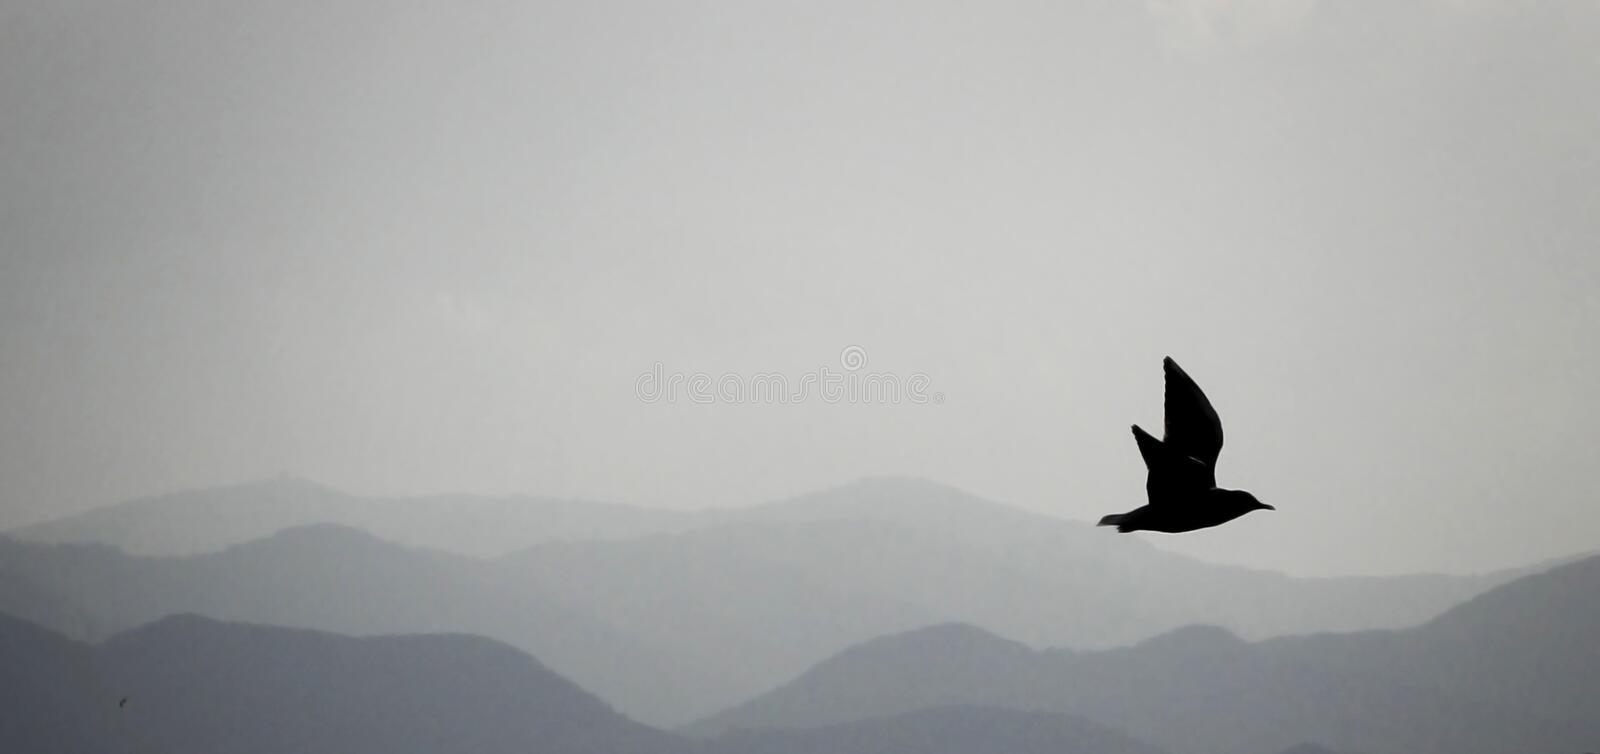 Mountain landscape and silhouette of a flying bird in the background royalty free stock photos